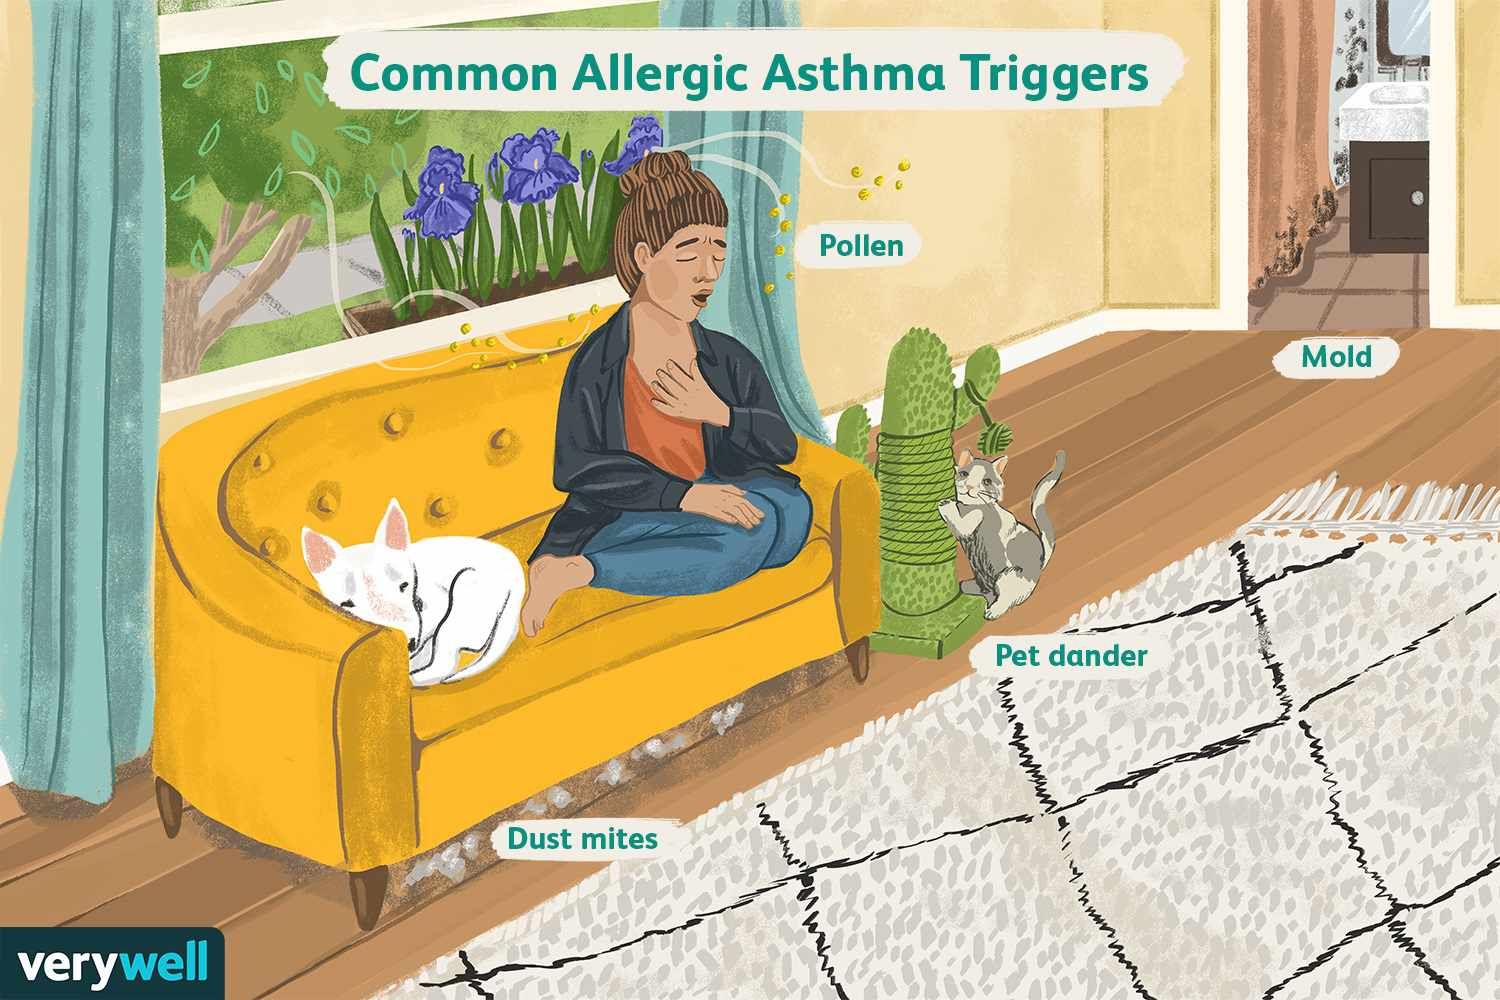 Common Allergic Asthma Triggers